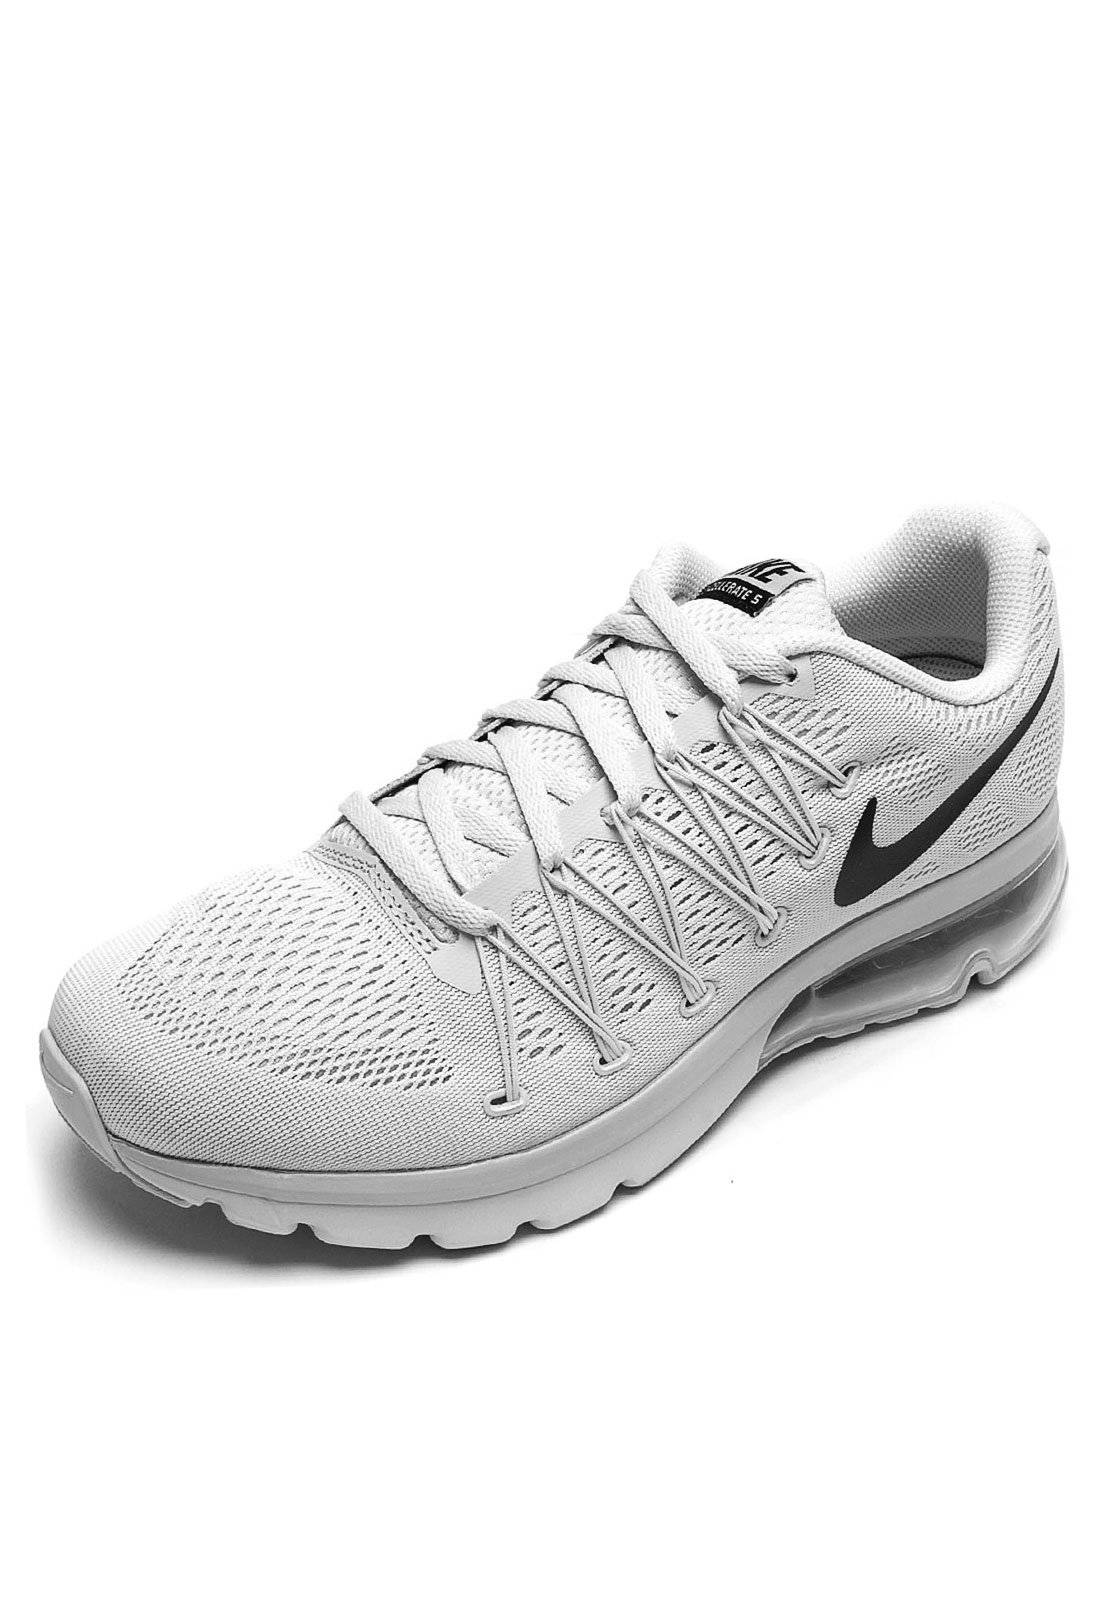 finest selection 5af86 dc6fb Tênis Nike Air Max Excellerate 5 Cinza - Compre Agora   Kanui Brasil